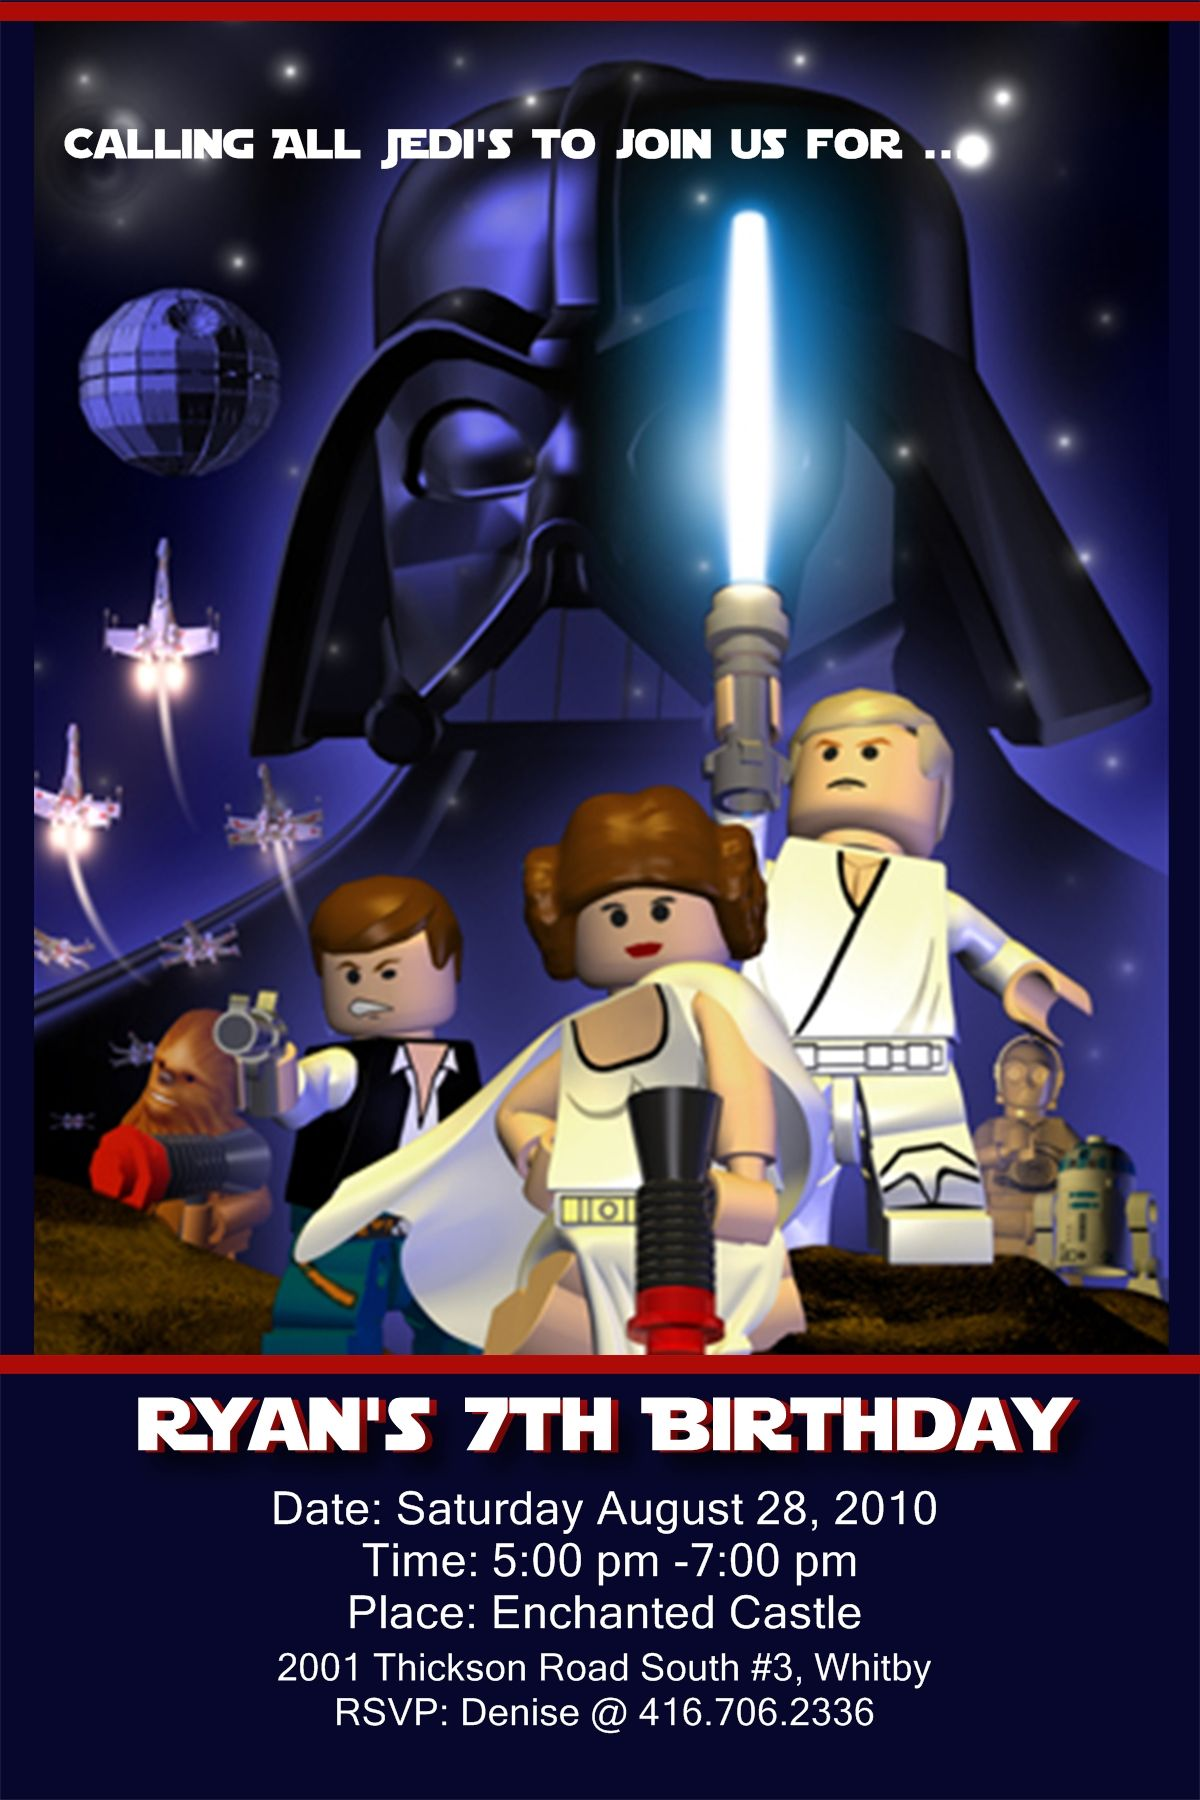 17 Best images about Lego Star Wars Invites on Pinterest | Free ...